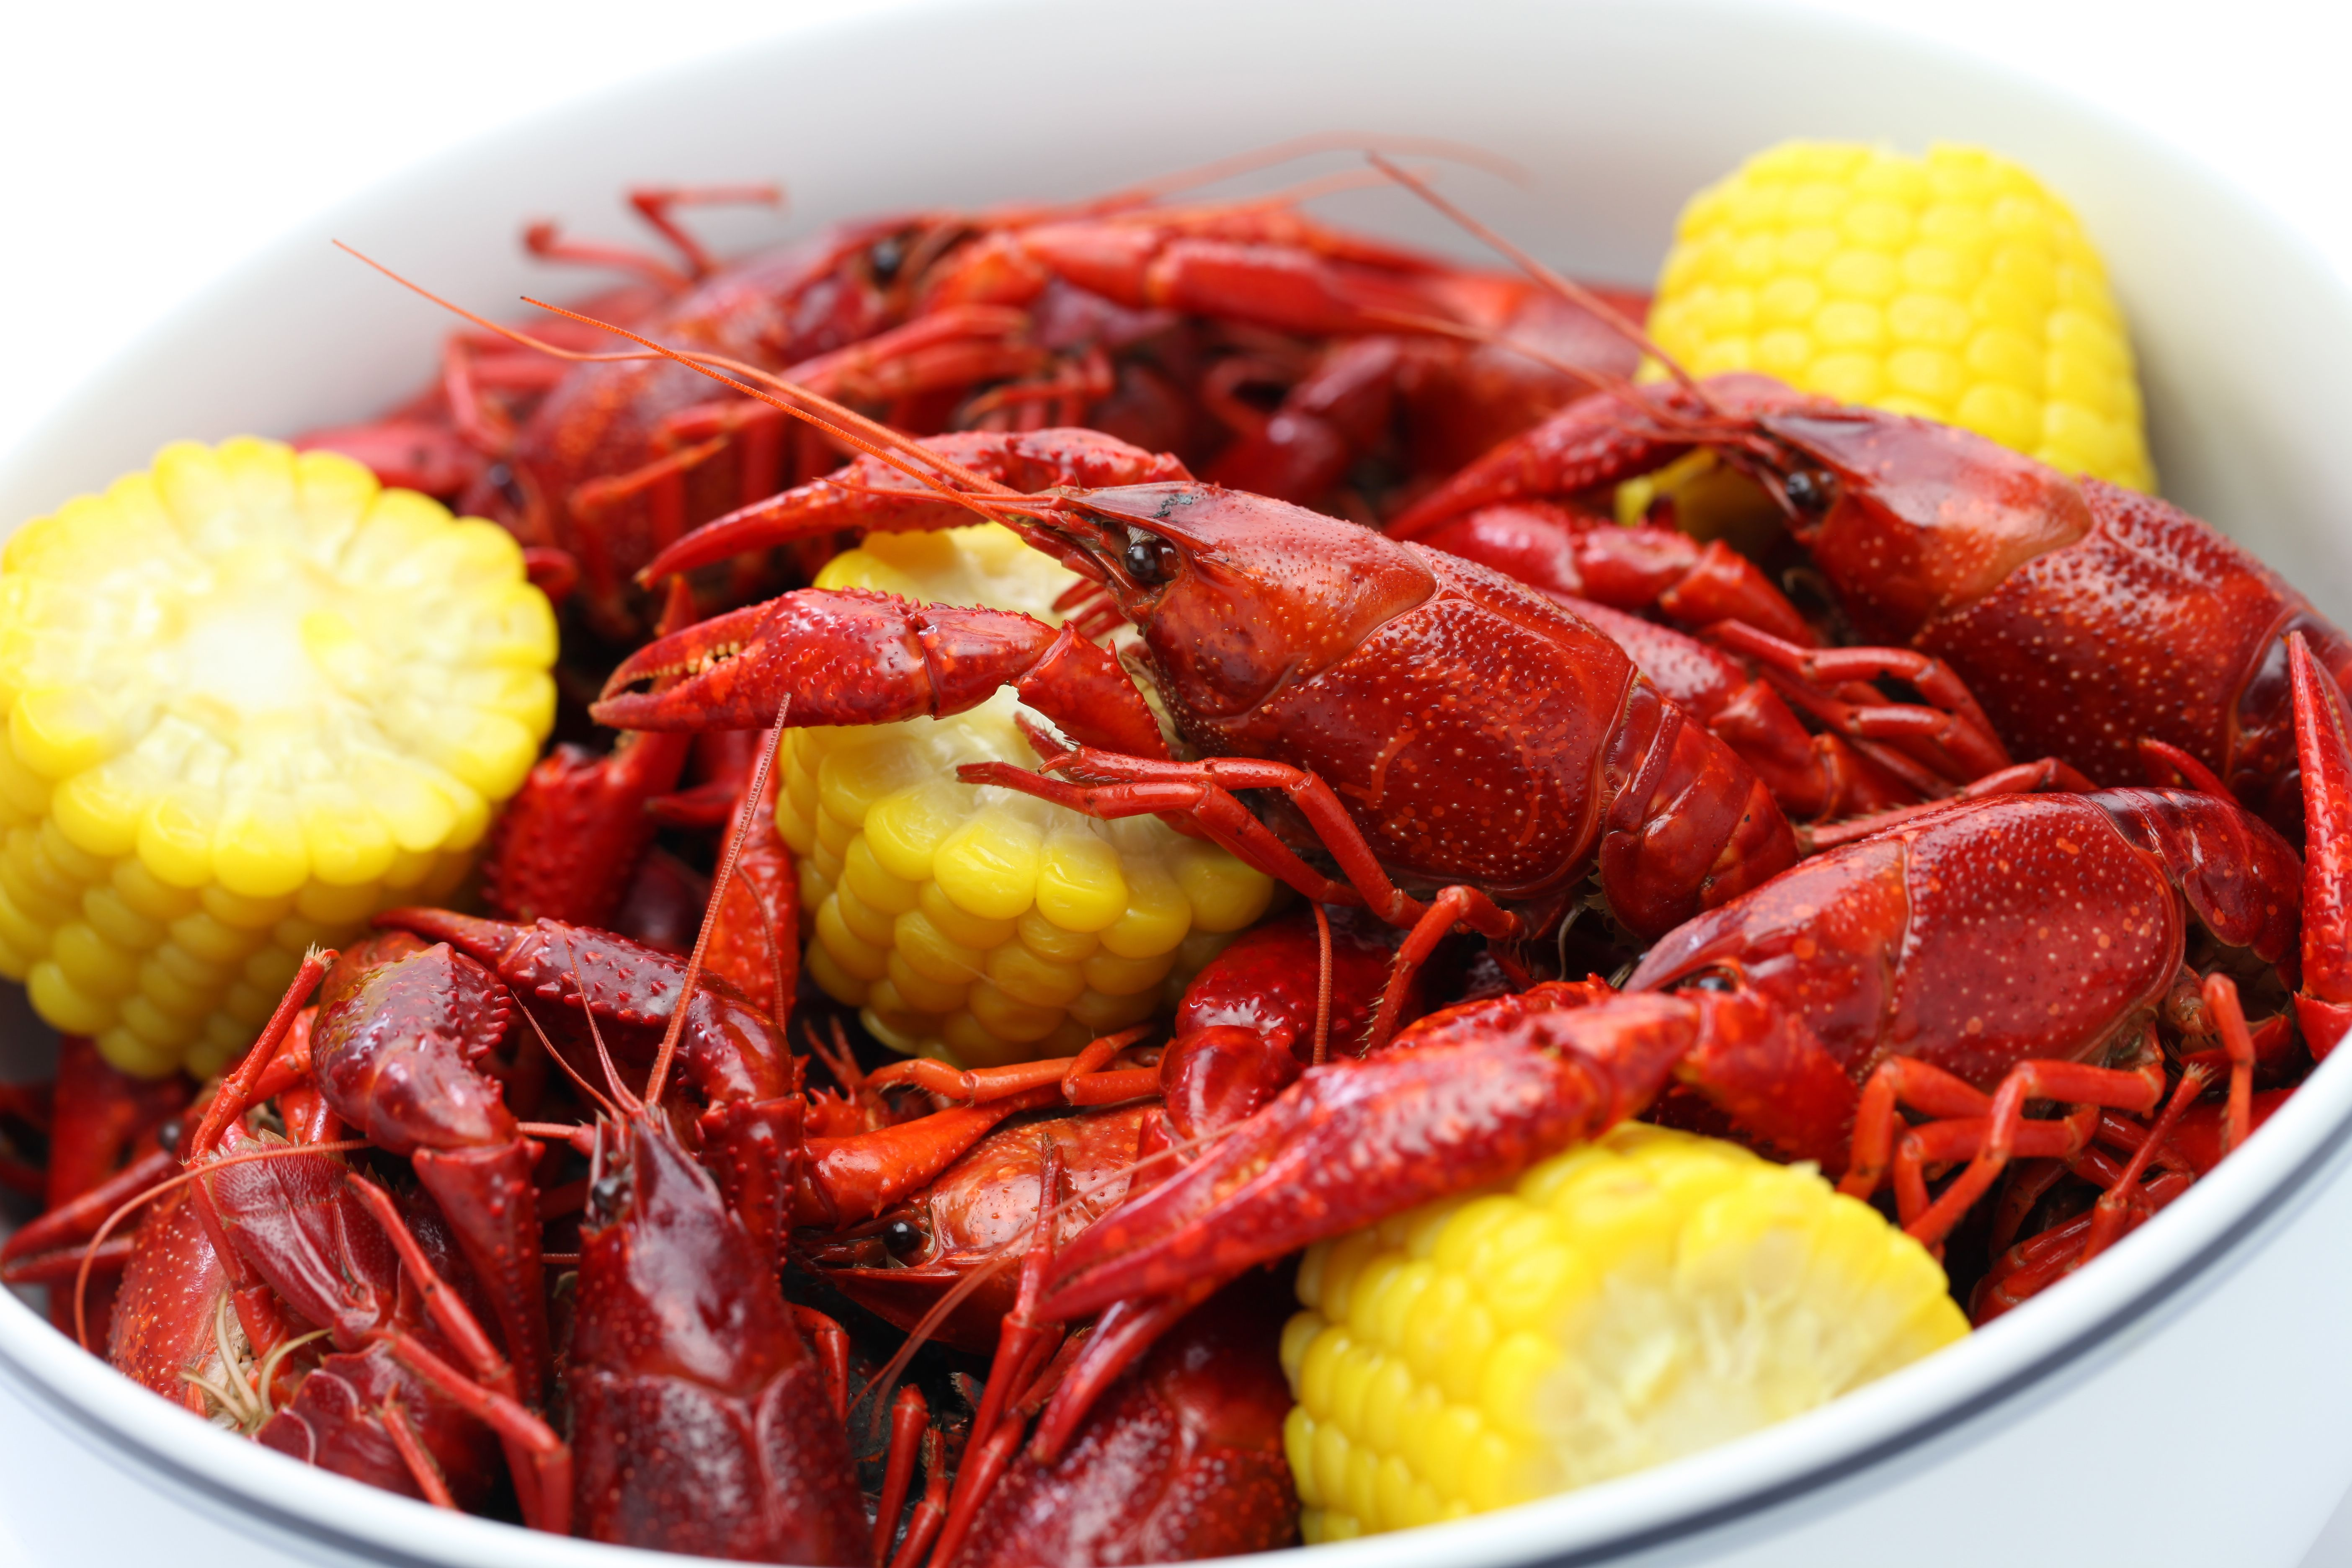 Who S Craving Some Crawfish Here S A Link To Houston S Top 15 Crawfish Places Https 4sq Com 2q16sy3 Hop I In 2020 Louisiana Cuisine Cajun Cuisine Crawfish Dishes